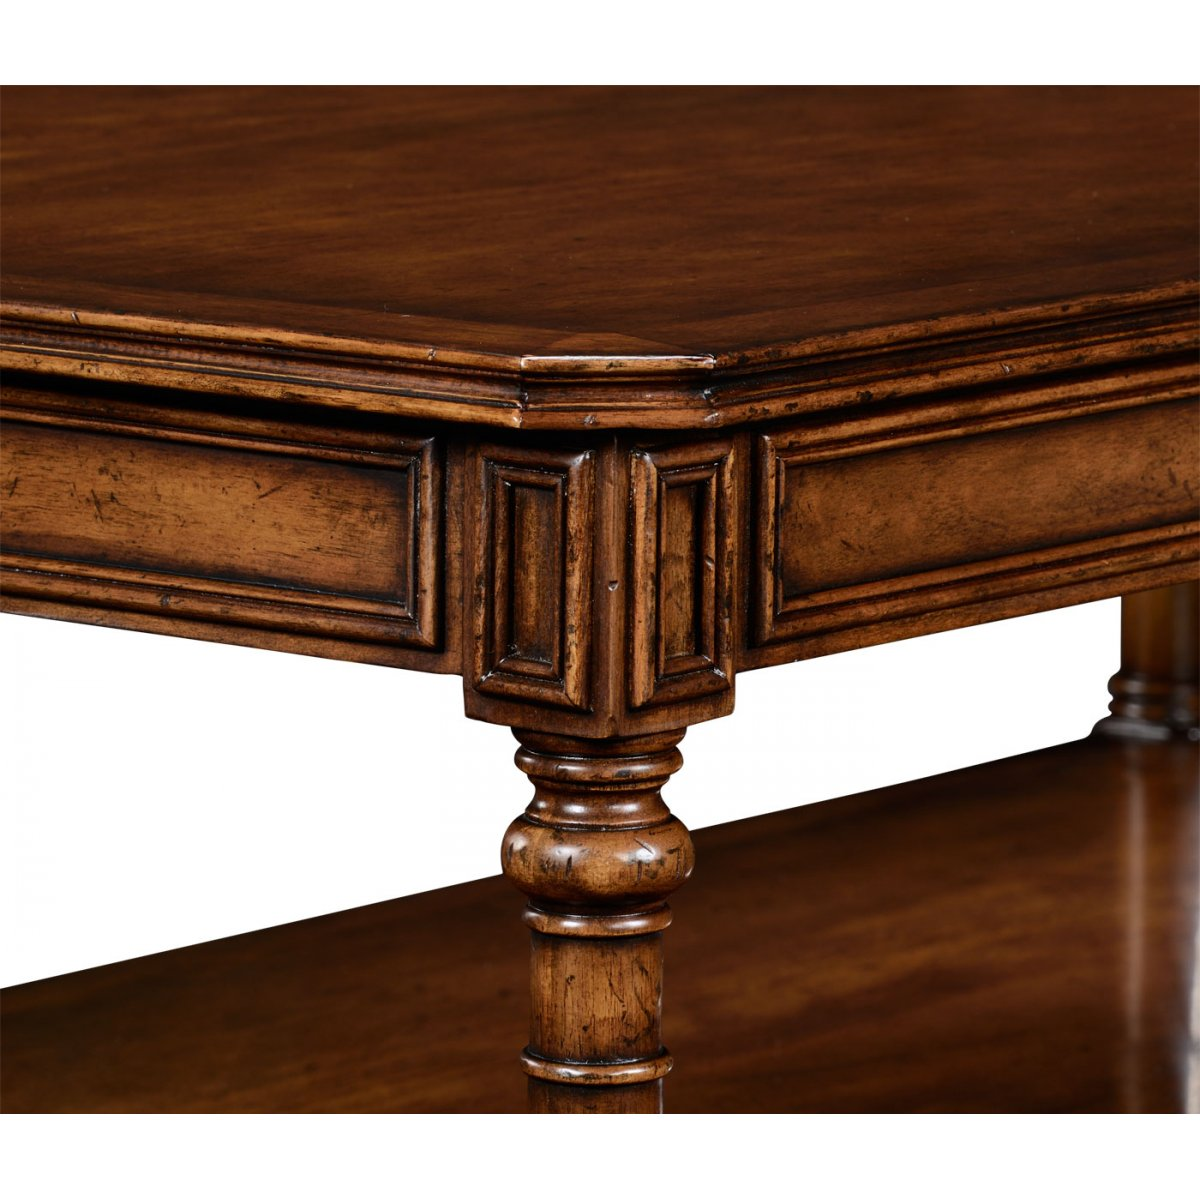 Walnut Oval Coffee Table Uk: Buy Walnut Coffee Table With Shelf